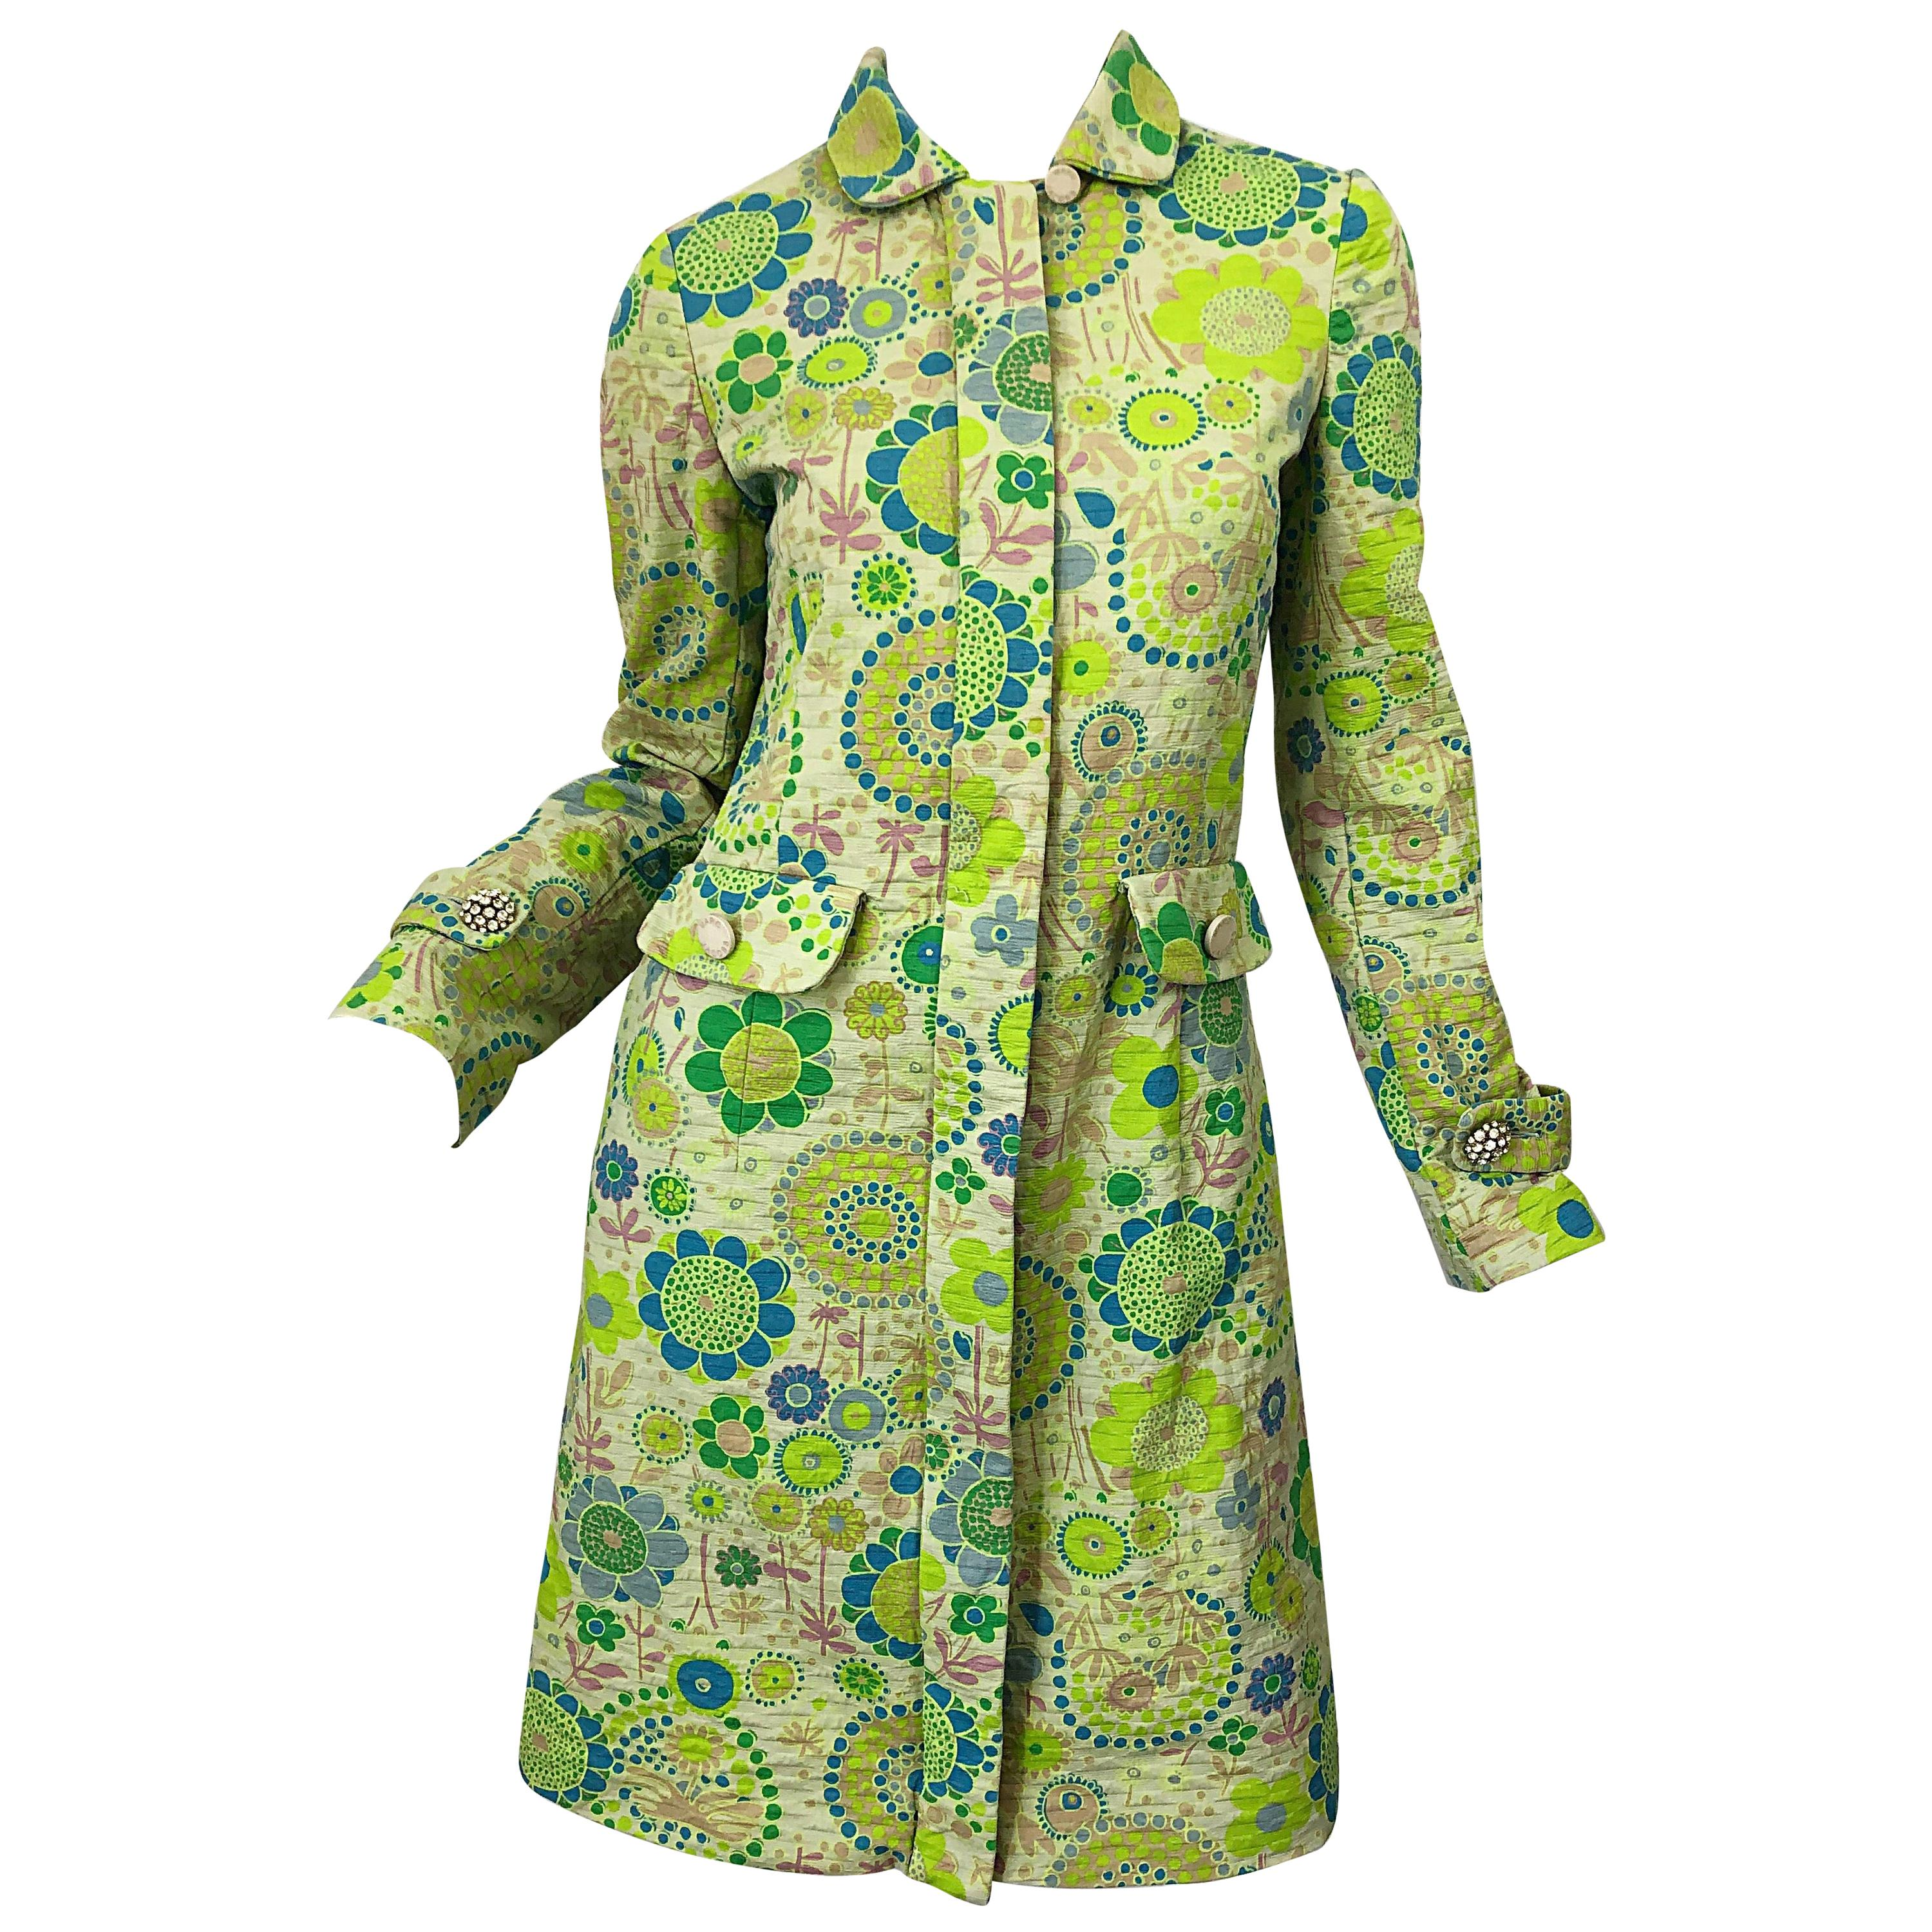 Marc Jacobs Collection Neon Green Blue Rhinestone Mod 60s Style Cotton Jacket